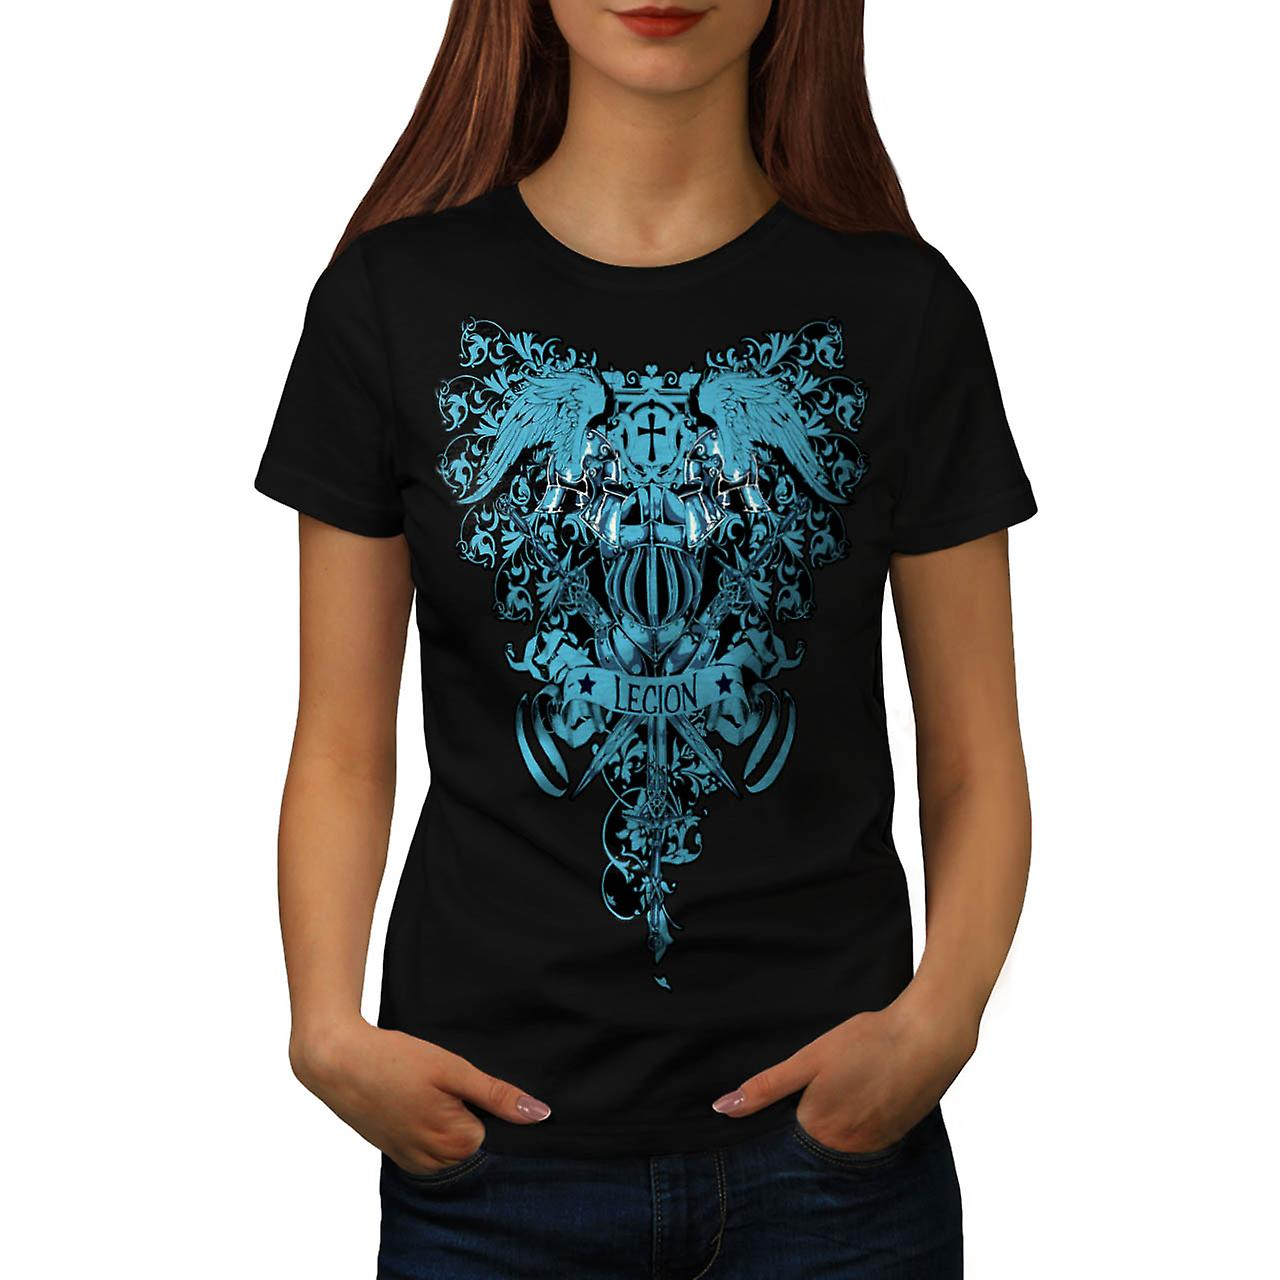 Kingdom Legion Cross Dead Symbol Women Black T-shirt | Wellcoda